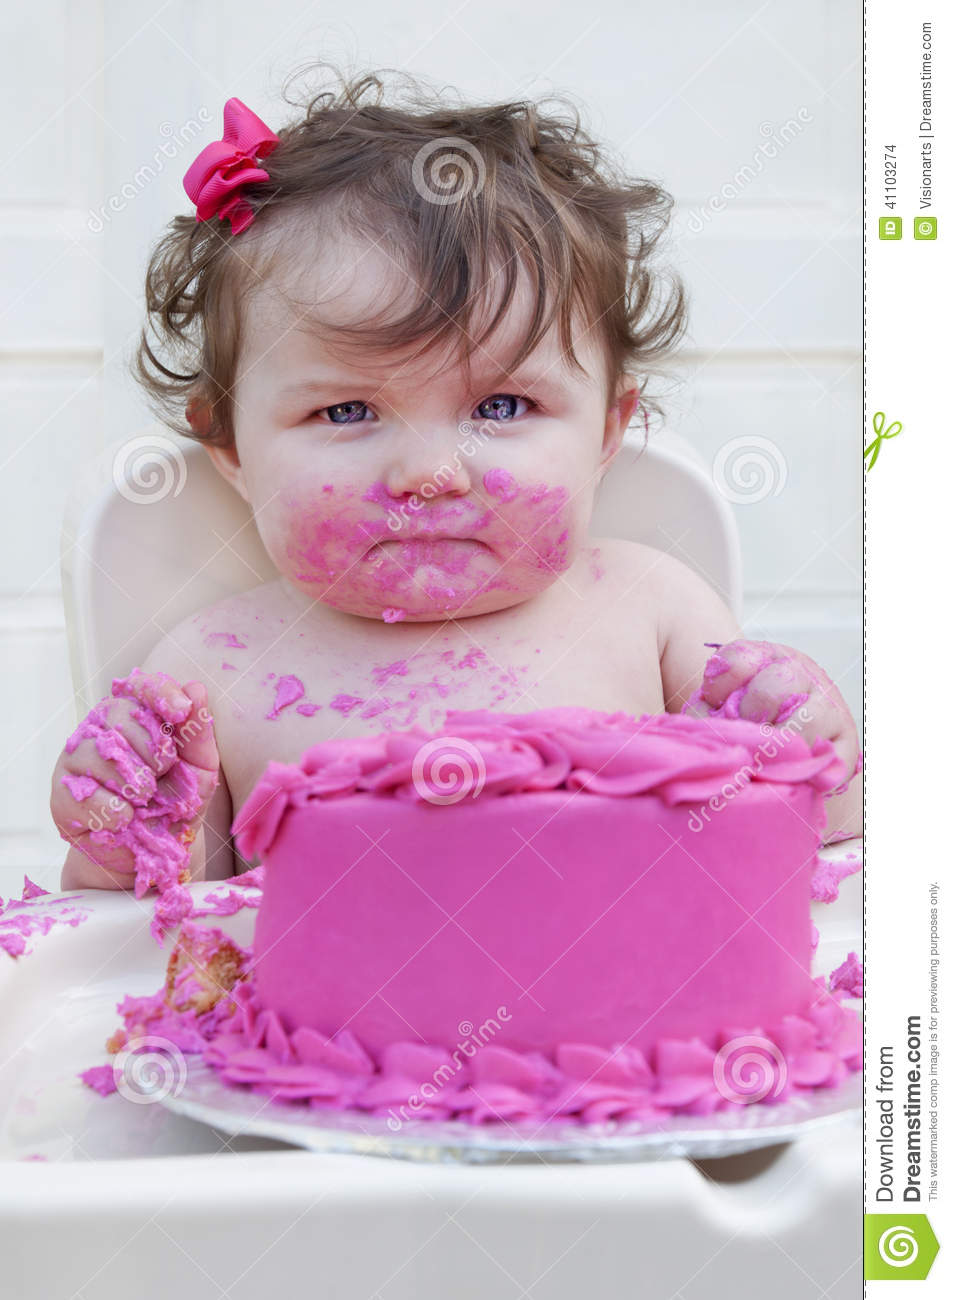 Girl First Birthday Outfit Pinterest: Closeup Of A Baby Girl Eating Her 1st Birthday C Stock